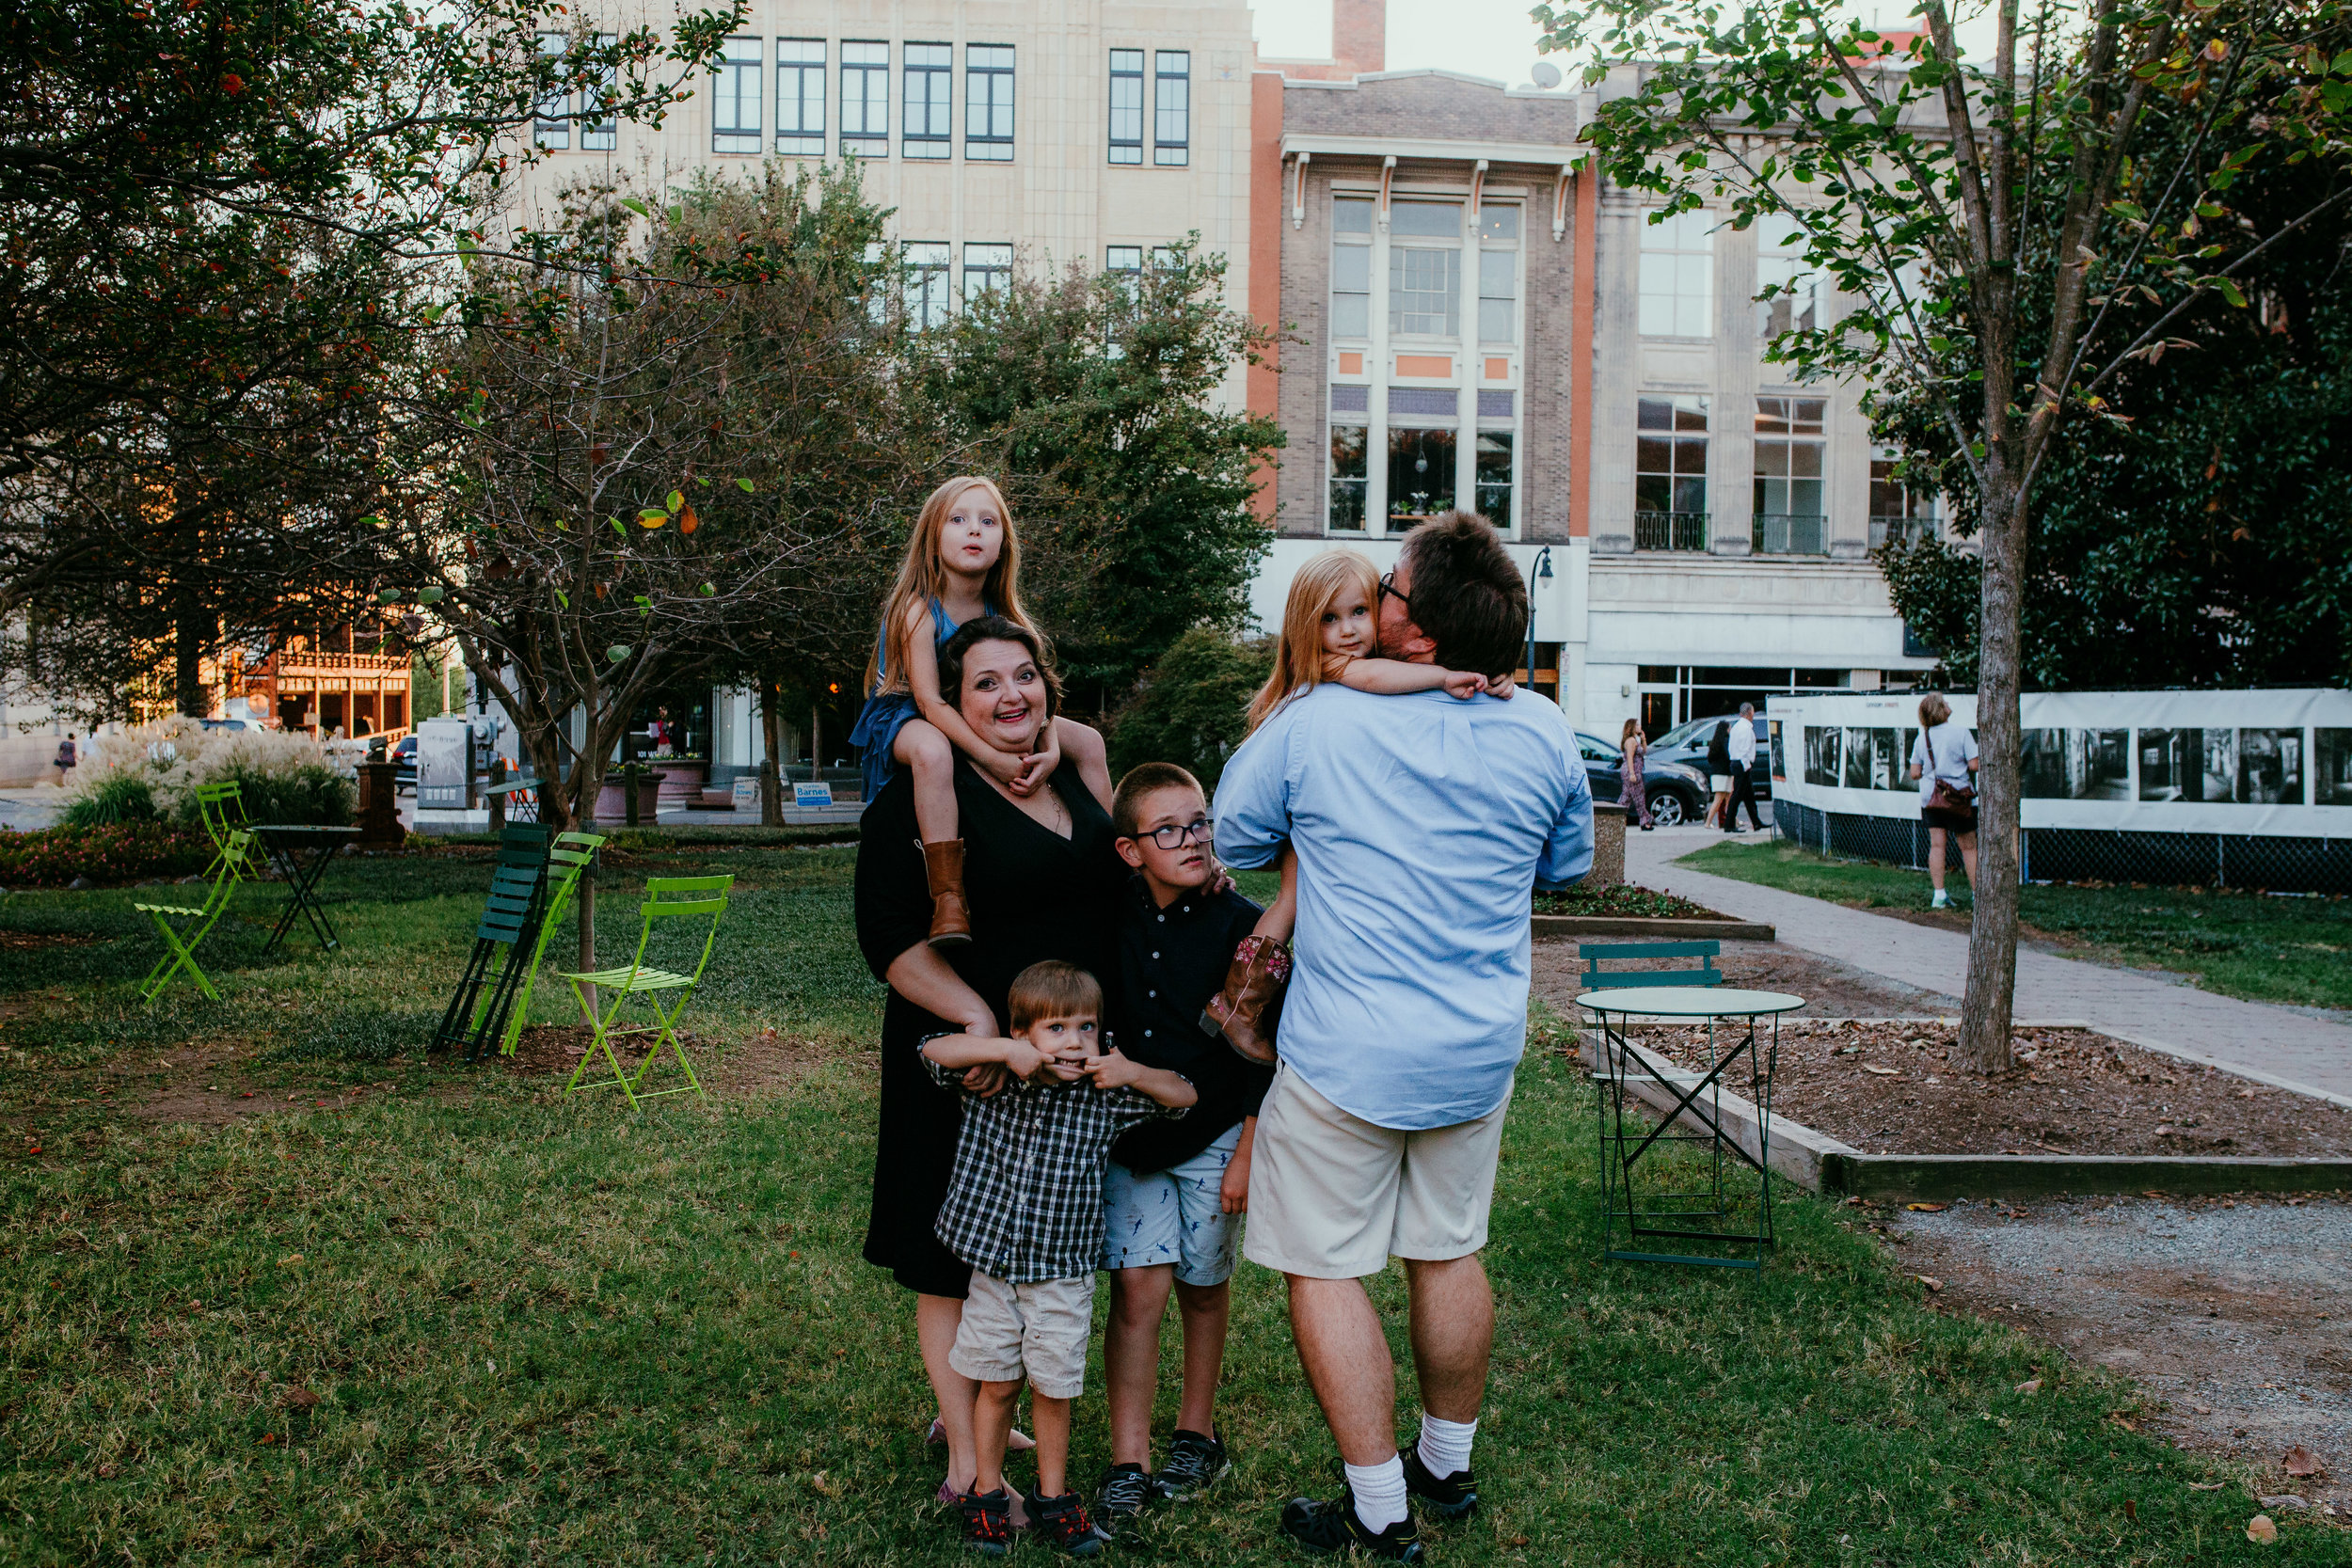 sweet family moment at the community park during a downtown durham, NC family photography session | hanna Hill photography | Raleigh birth and family photographer